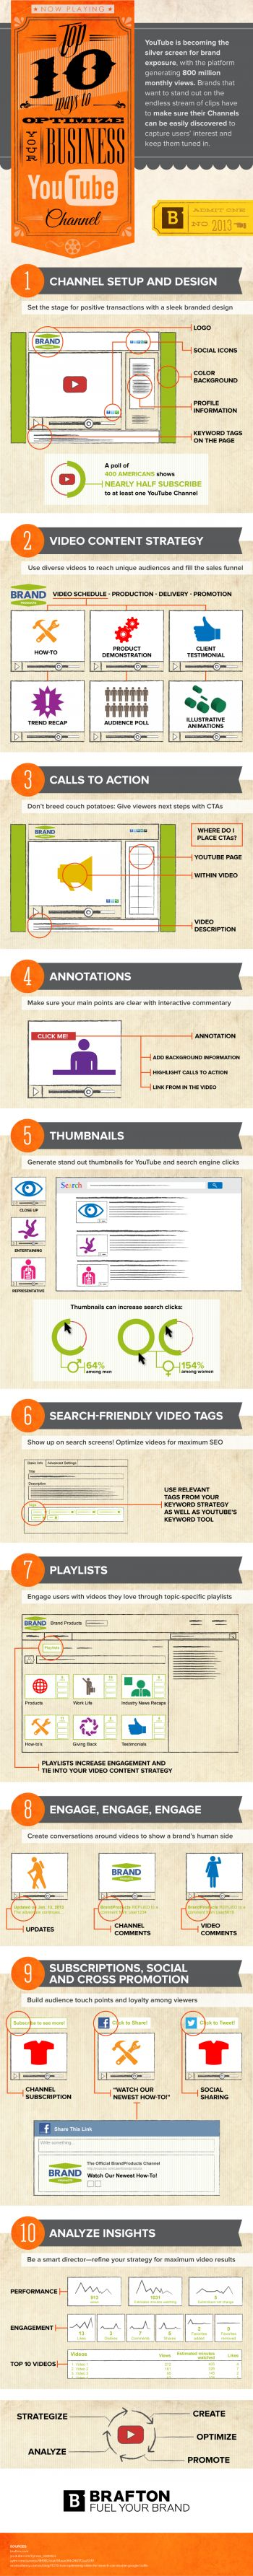 """""""Top 10 Ways to Optimize Your Brand's YouTube Channel"""" [INFOGRAPHIC]"""